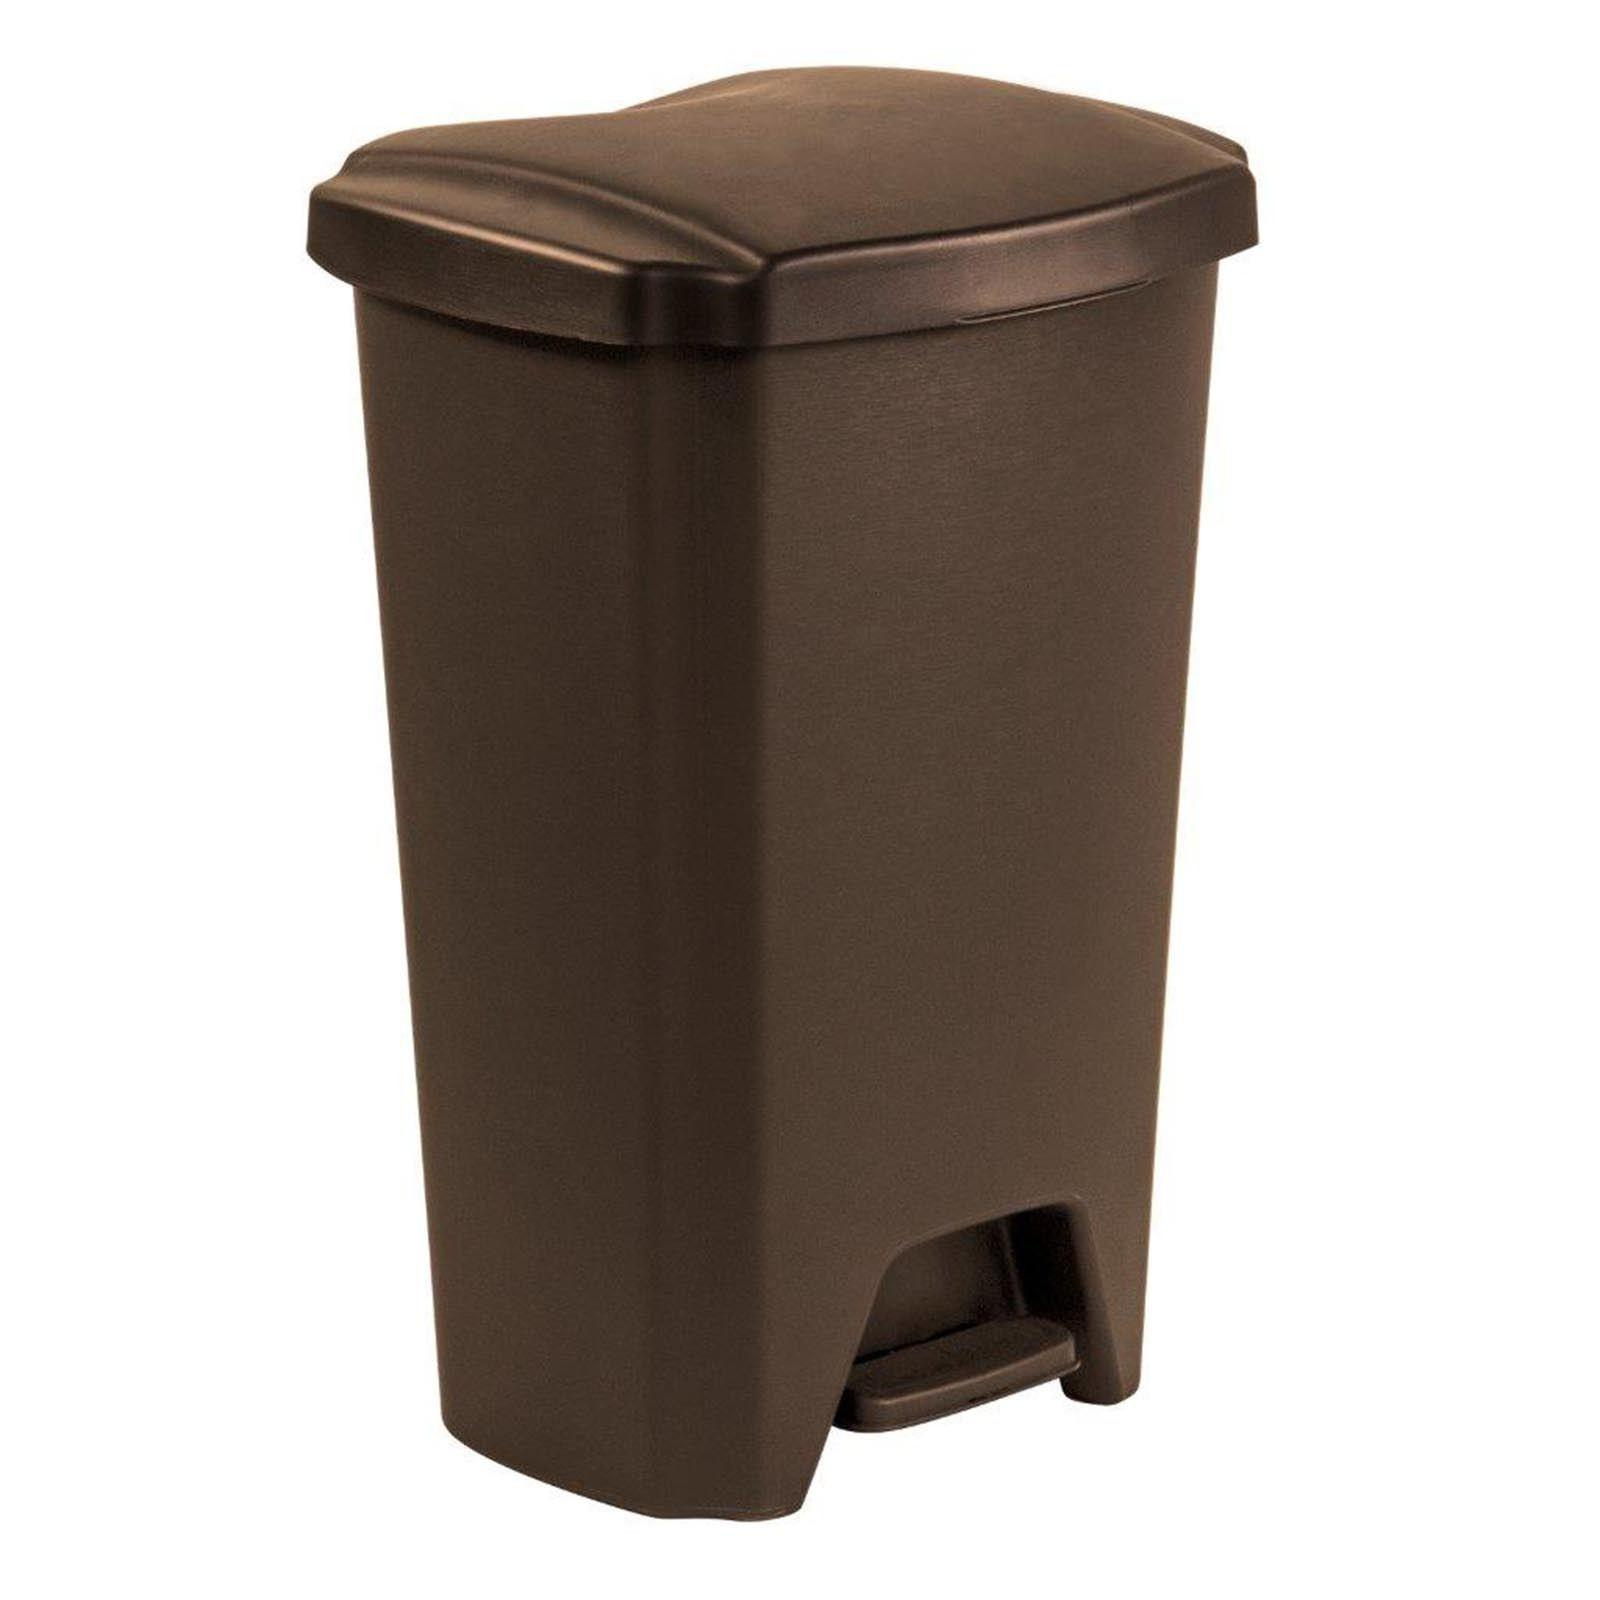 Plastic Trash Can Bin Waste Trash Containers